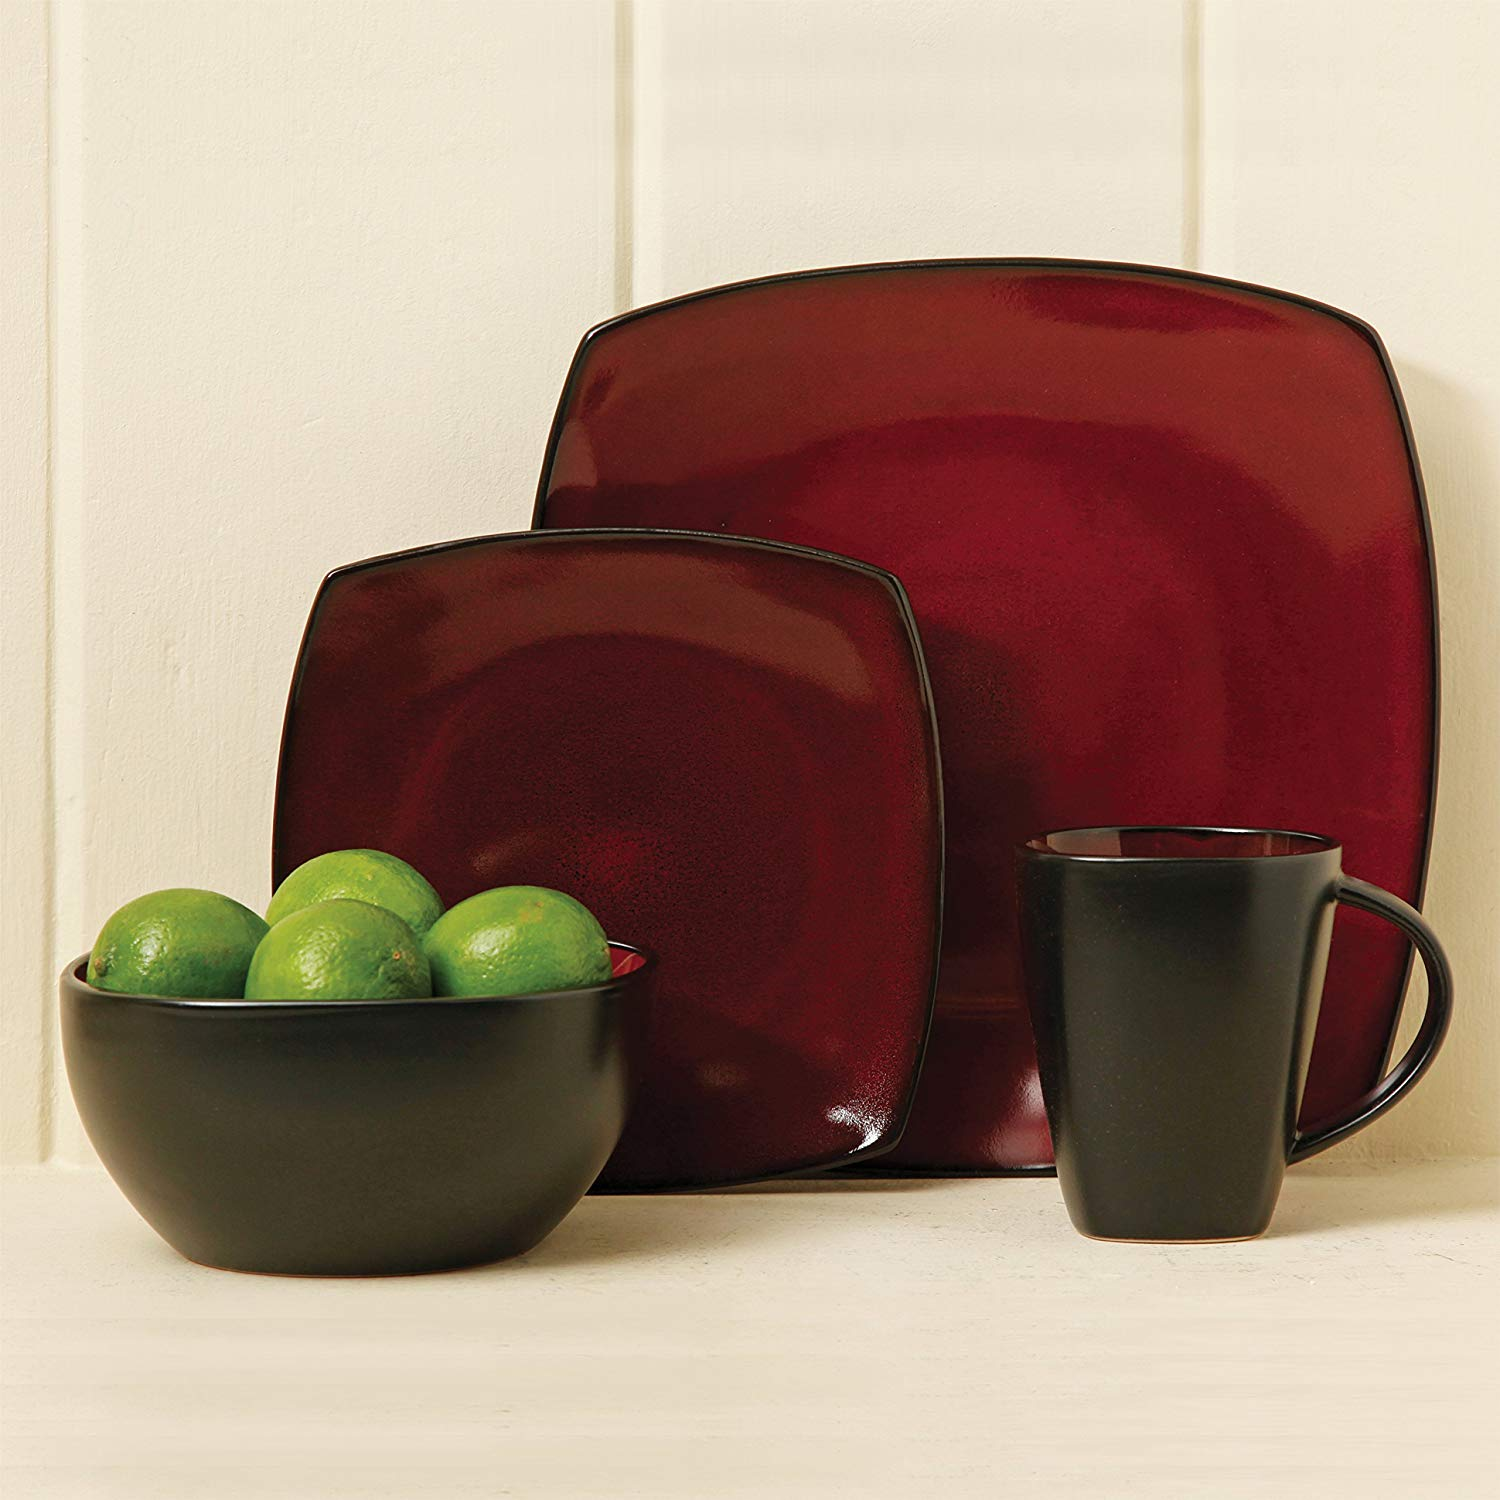 LLESS Elite Soho Lounge Reactive Glaze 16 Piece Dinnerware Set in Red; Includes 4 Dinner Plates; 4 Dessert Plates, 4 Bowls and 4 Mugs